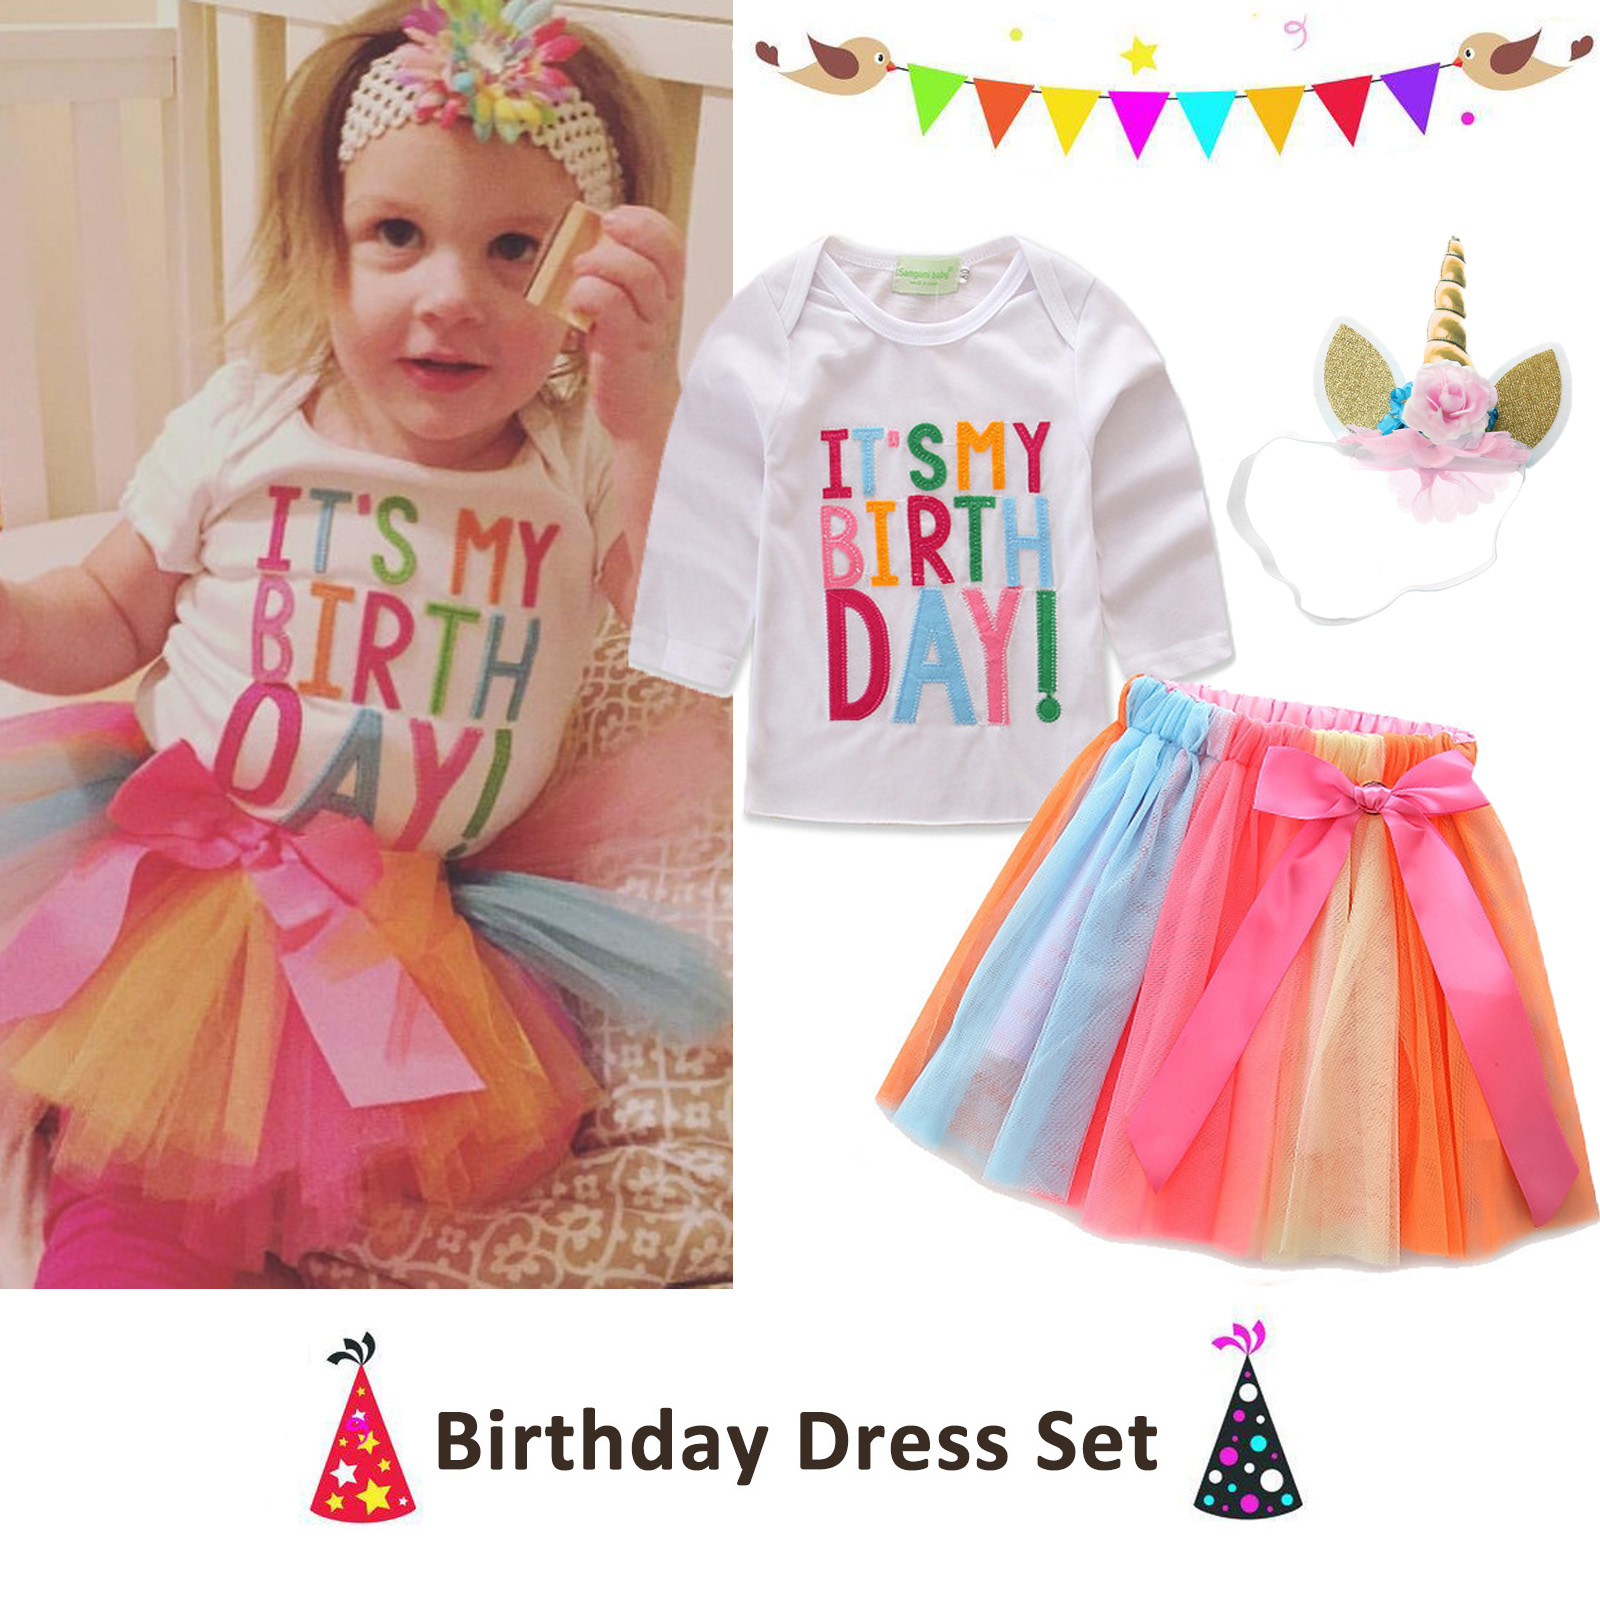 Details About Kids Baby Girls Birthday Party Tutu Tulle Skirt Dress Princess T Shirt Outfit UK